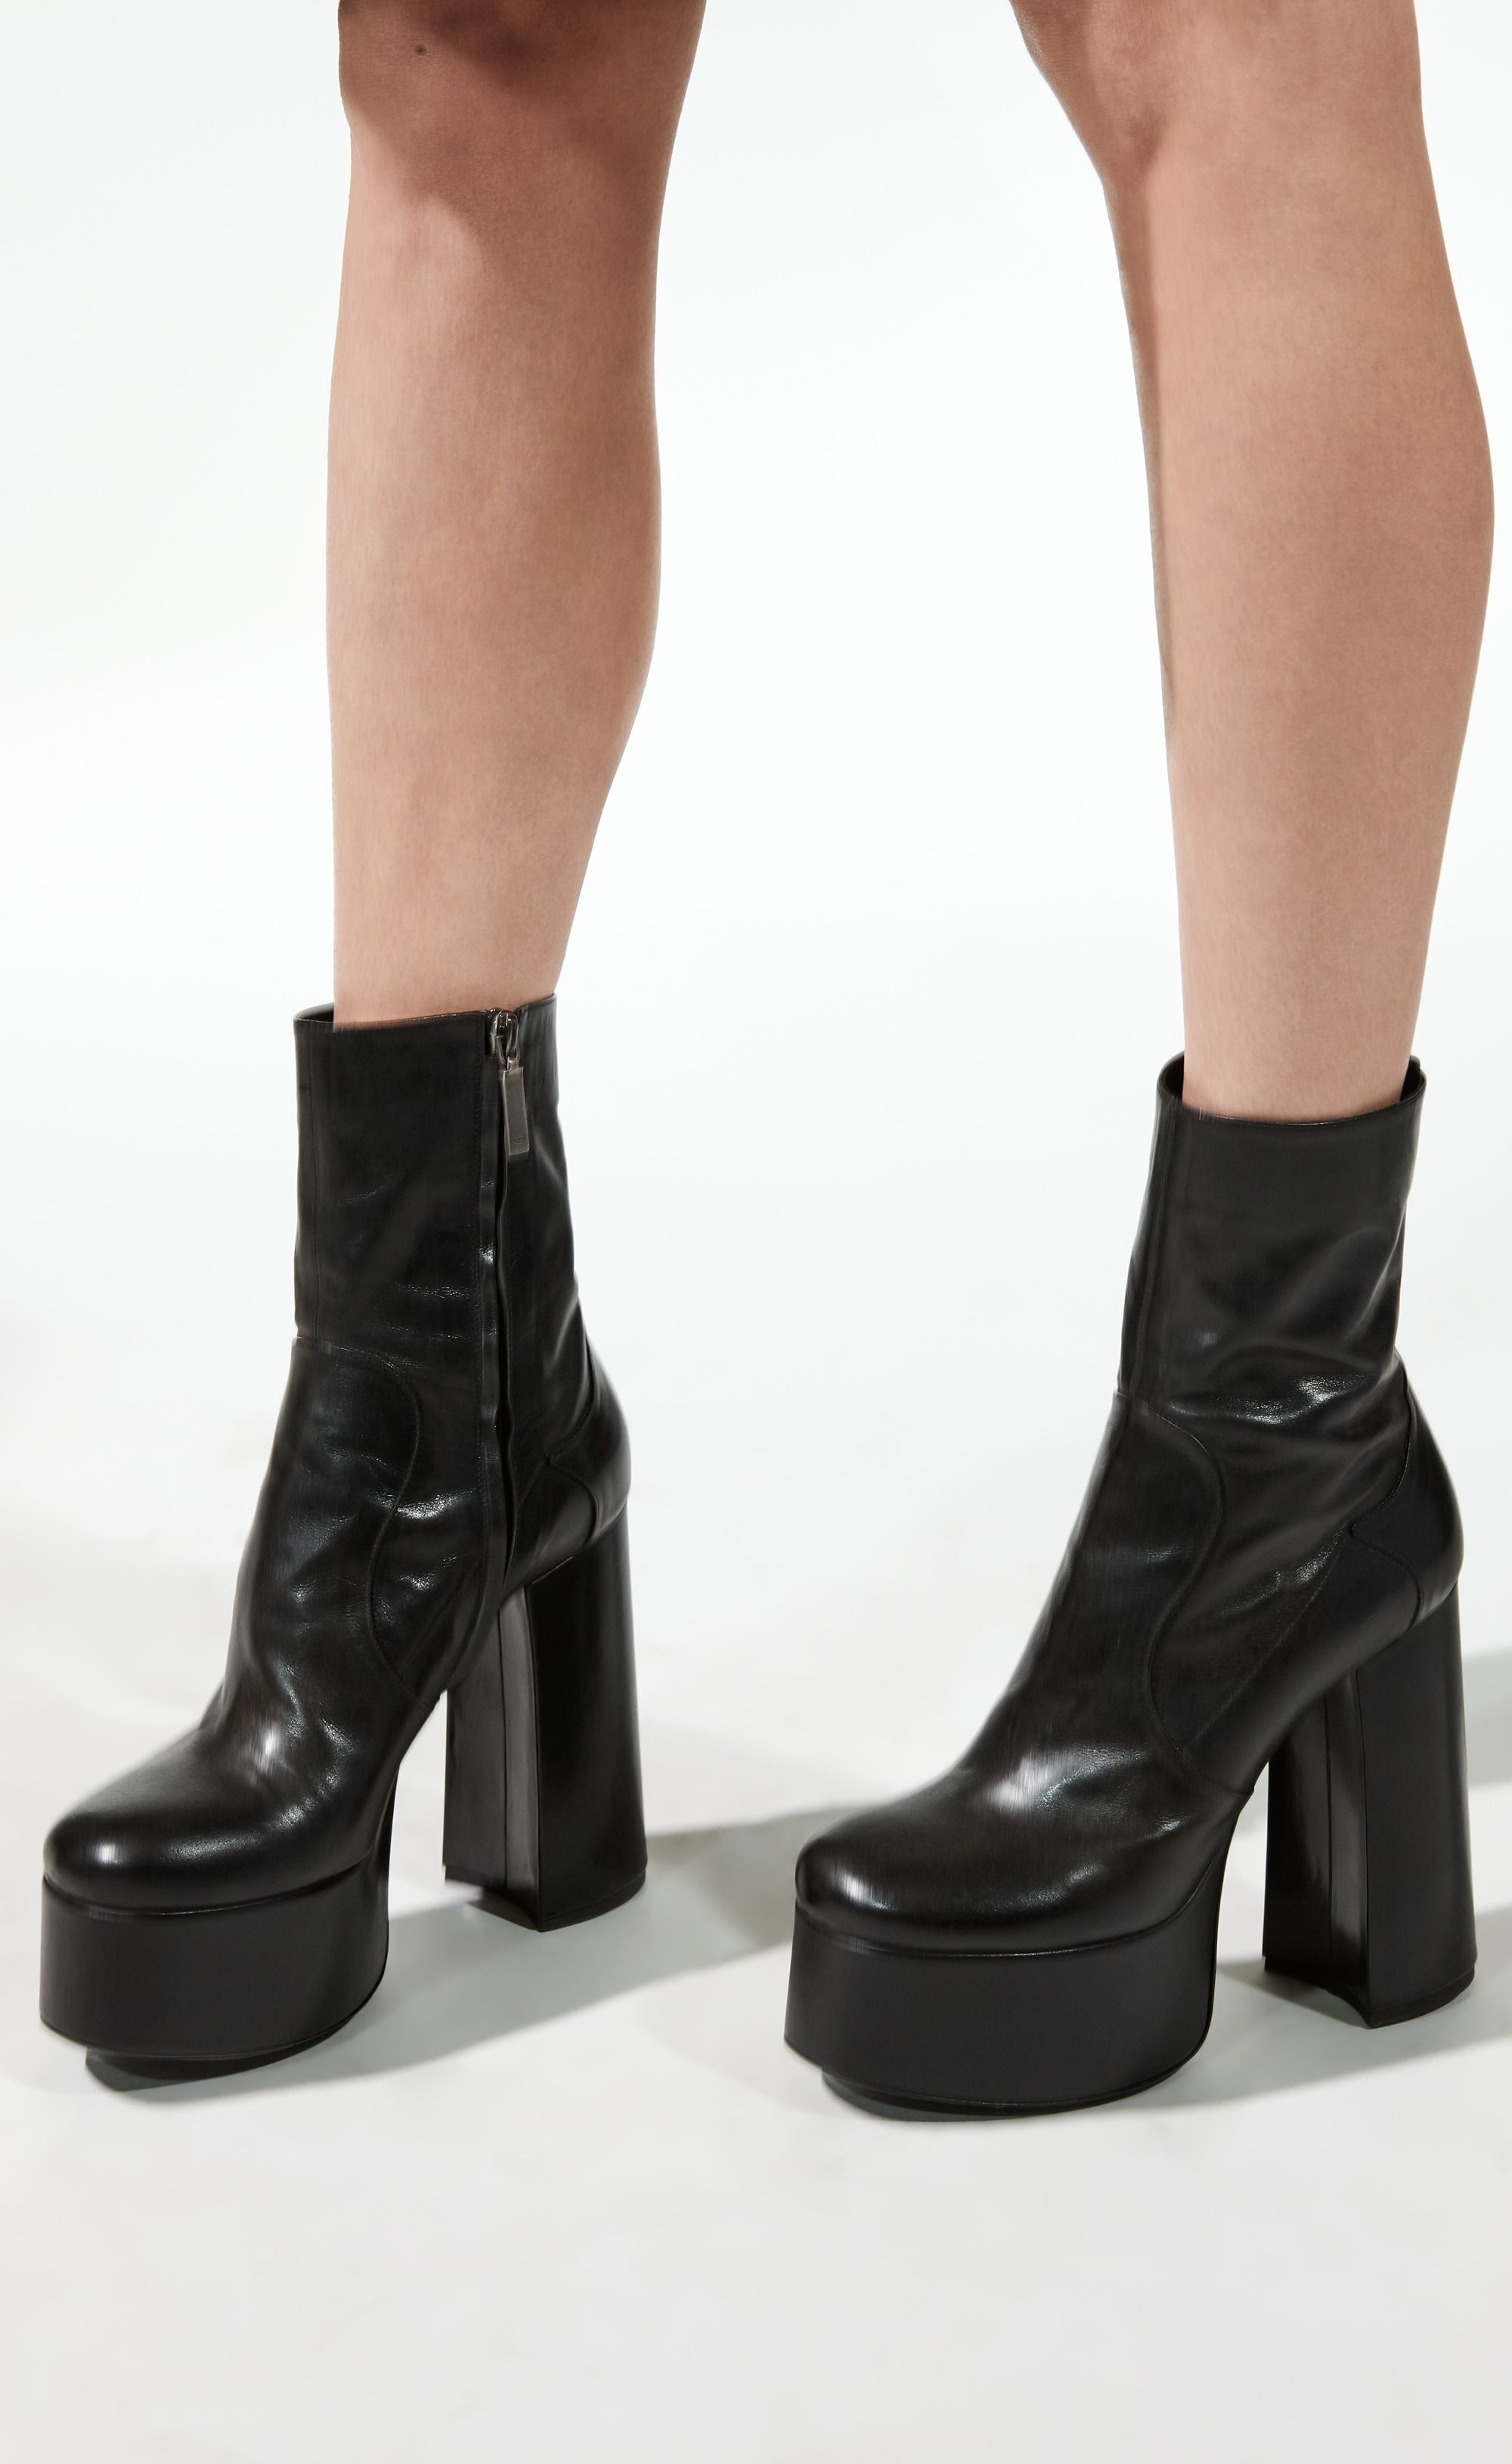 815136b2cb Saint Laurent Billy Platform Bootie In Leather | YSL.com | shoes ...